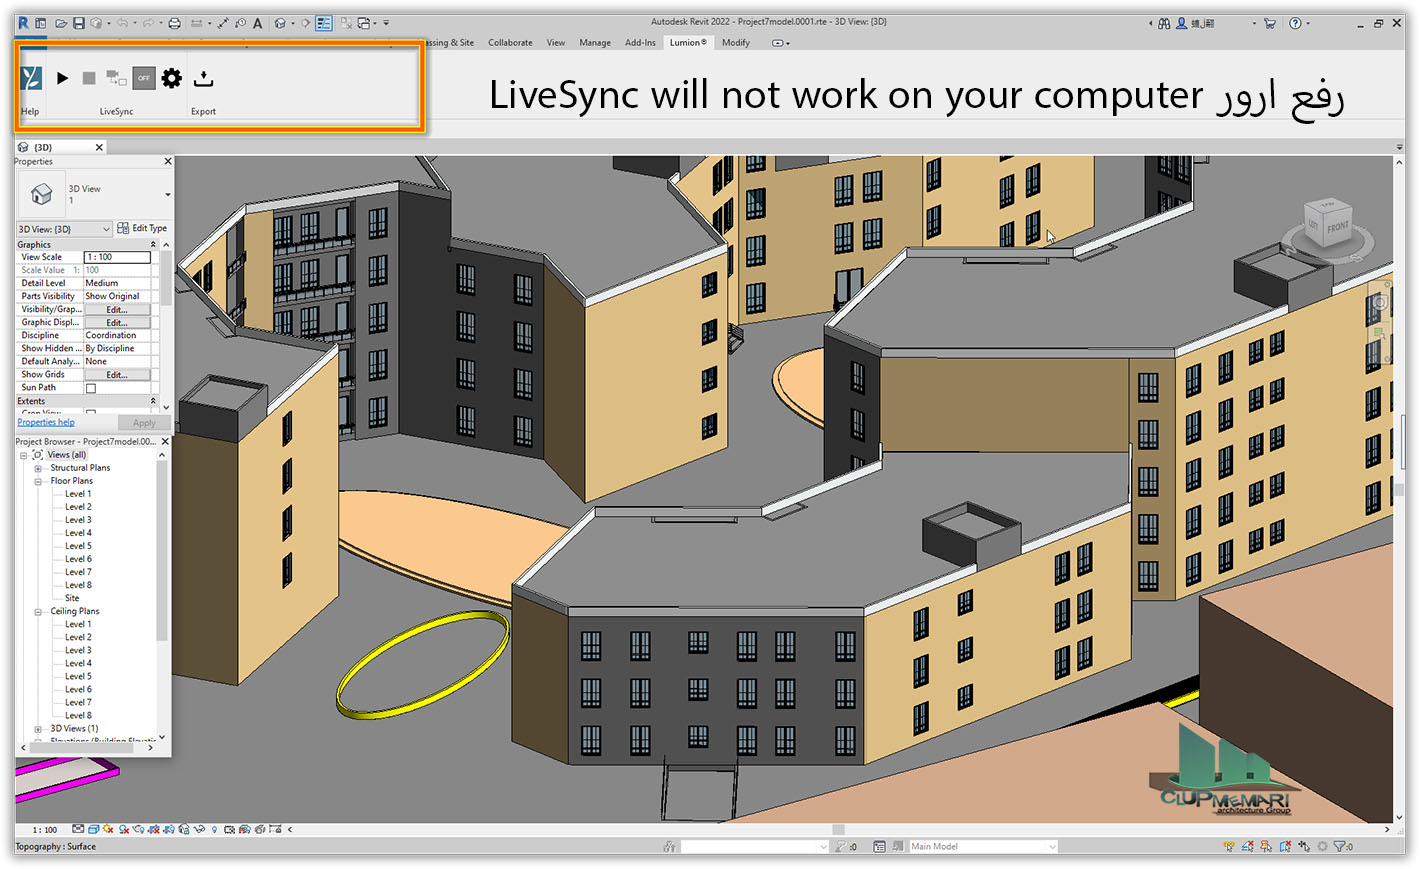 LiveSync will not work on your computer